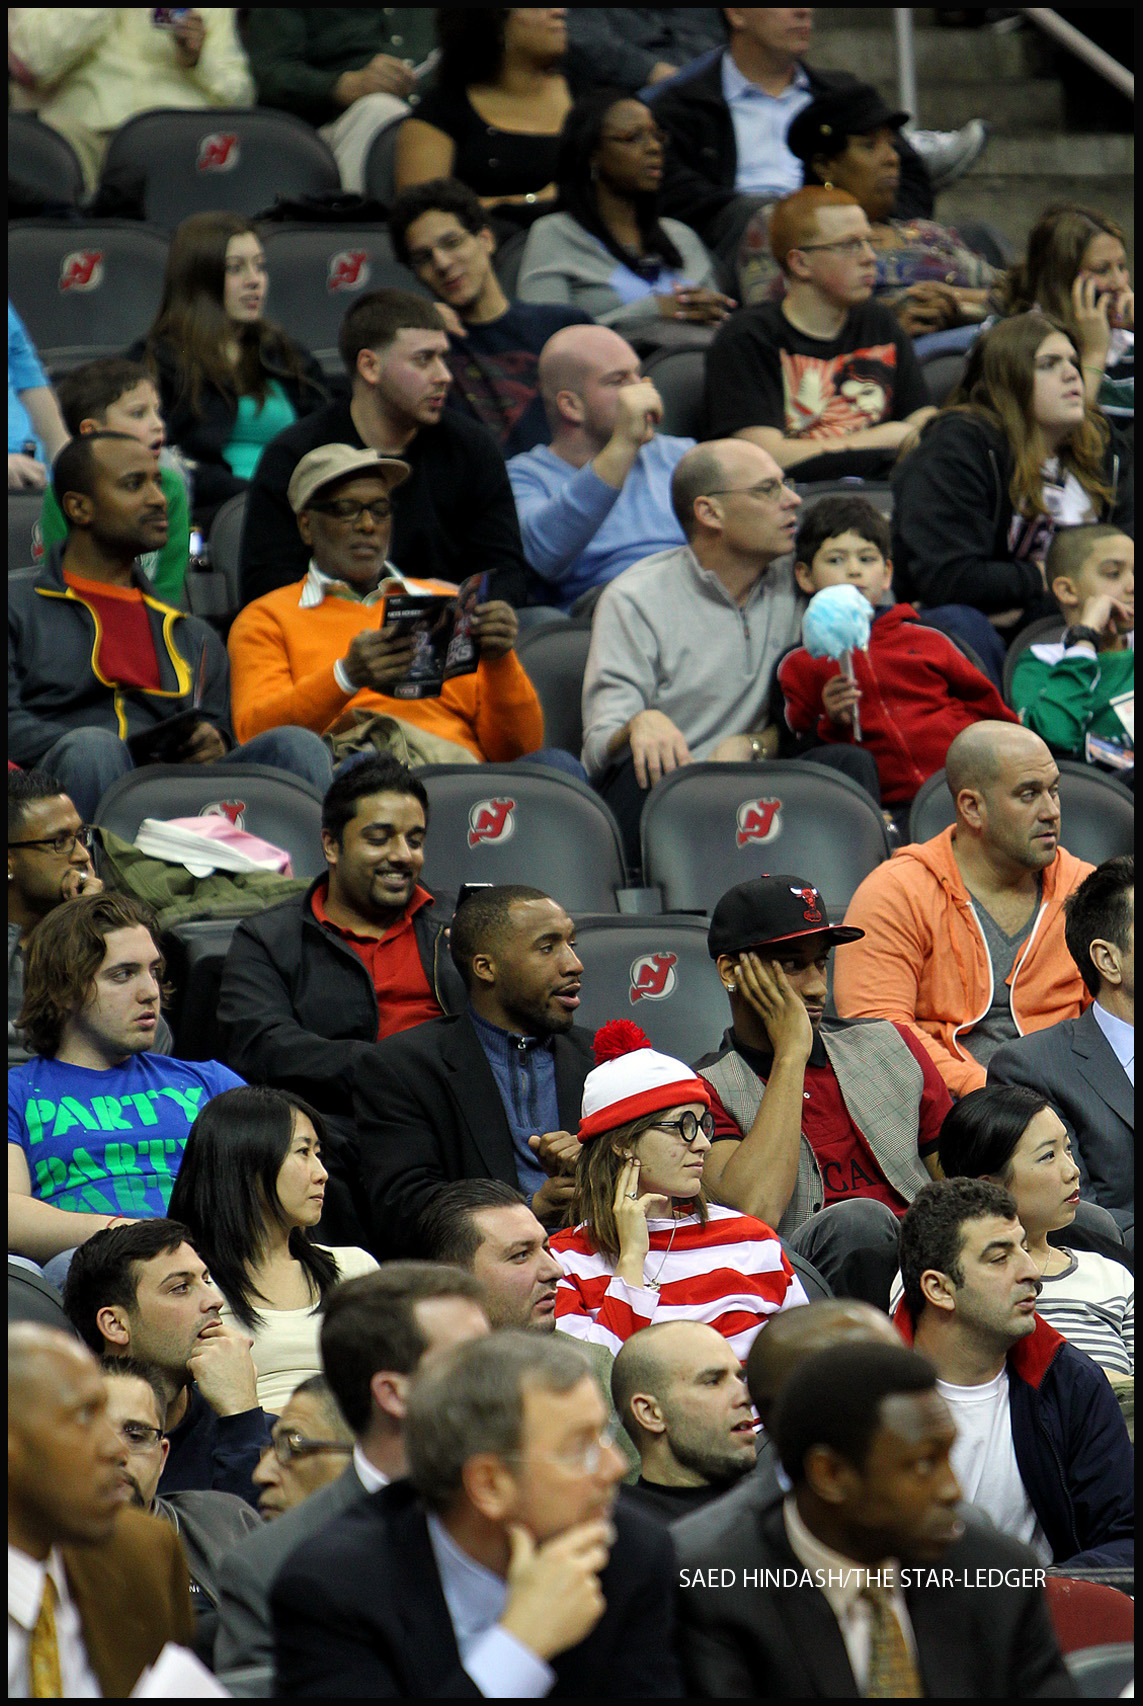 Where's Waldo?  Spotted during the New Jersey Nets game Monday March 12, 2012 at the Prudential Center.